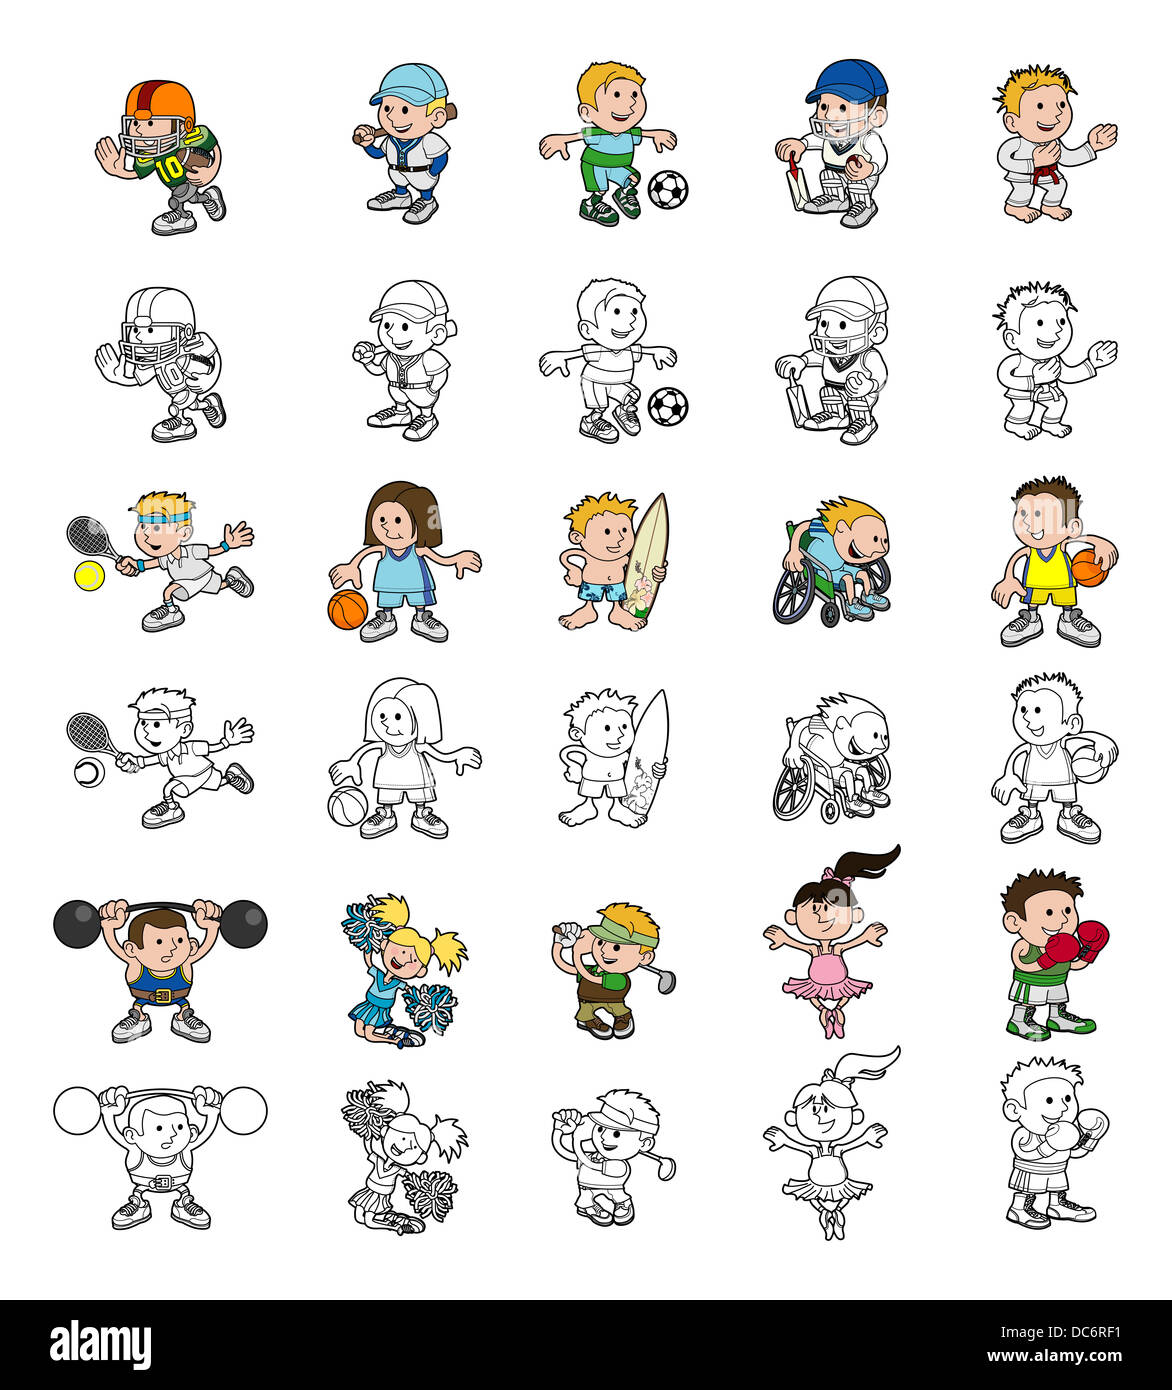 A set of cartoon people or children playing sports. Color and black and white outline versions. - Stock Image